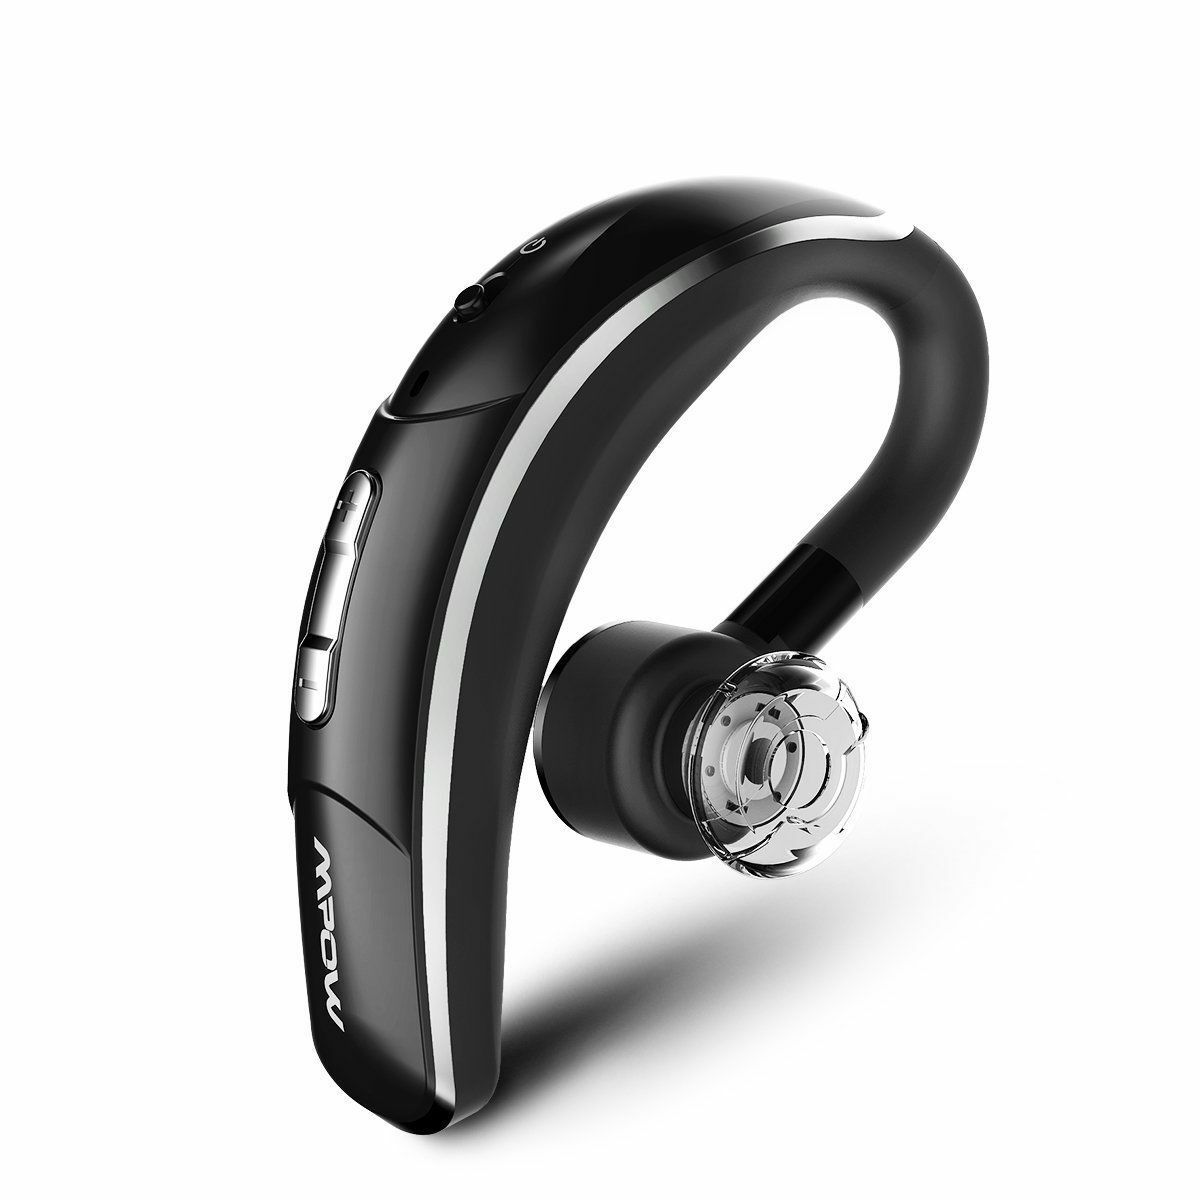 Mpow Wireless Headset Bluetooth Headphone Sports Earphone+